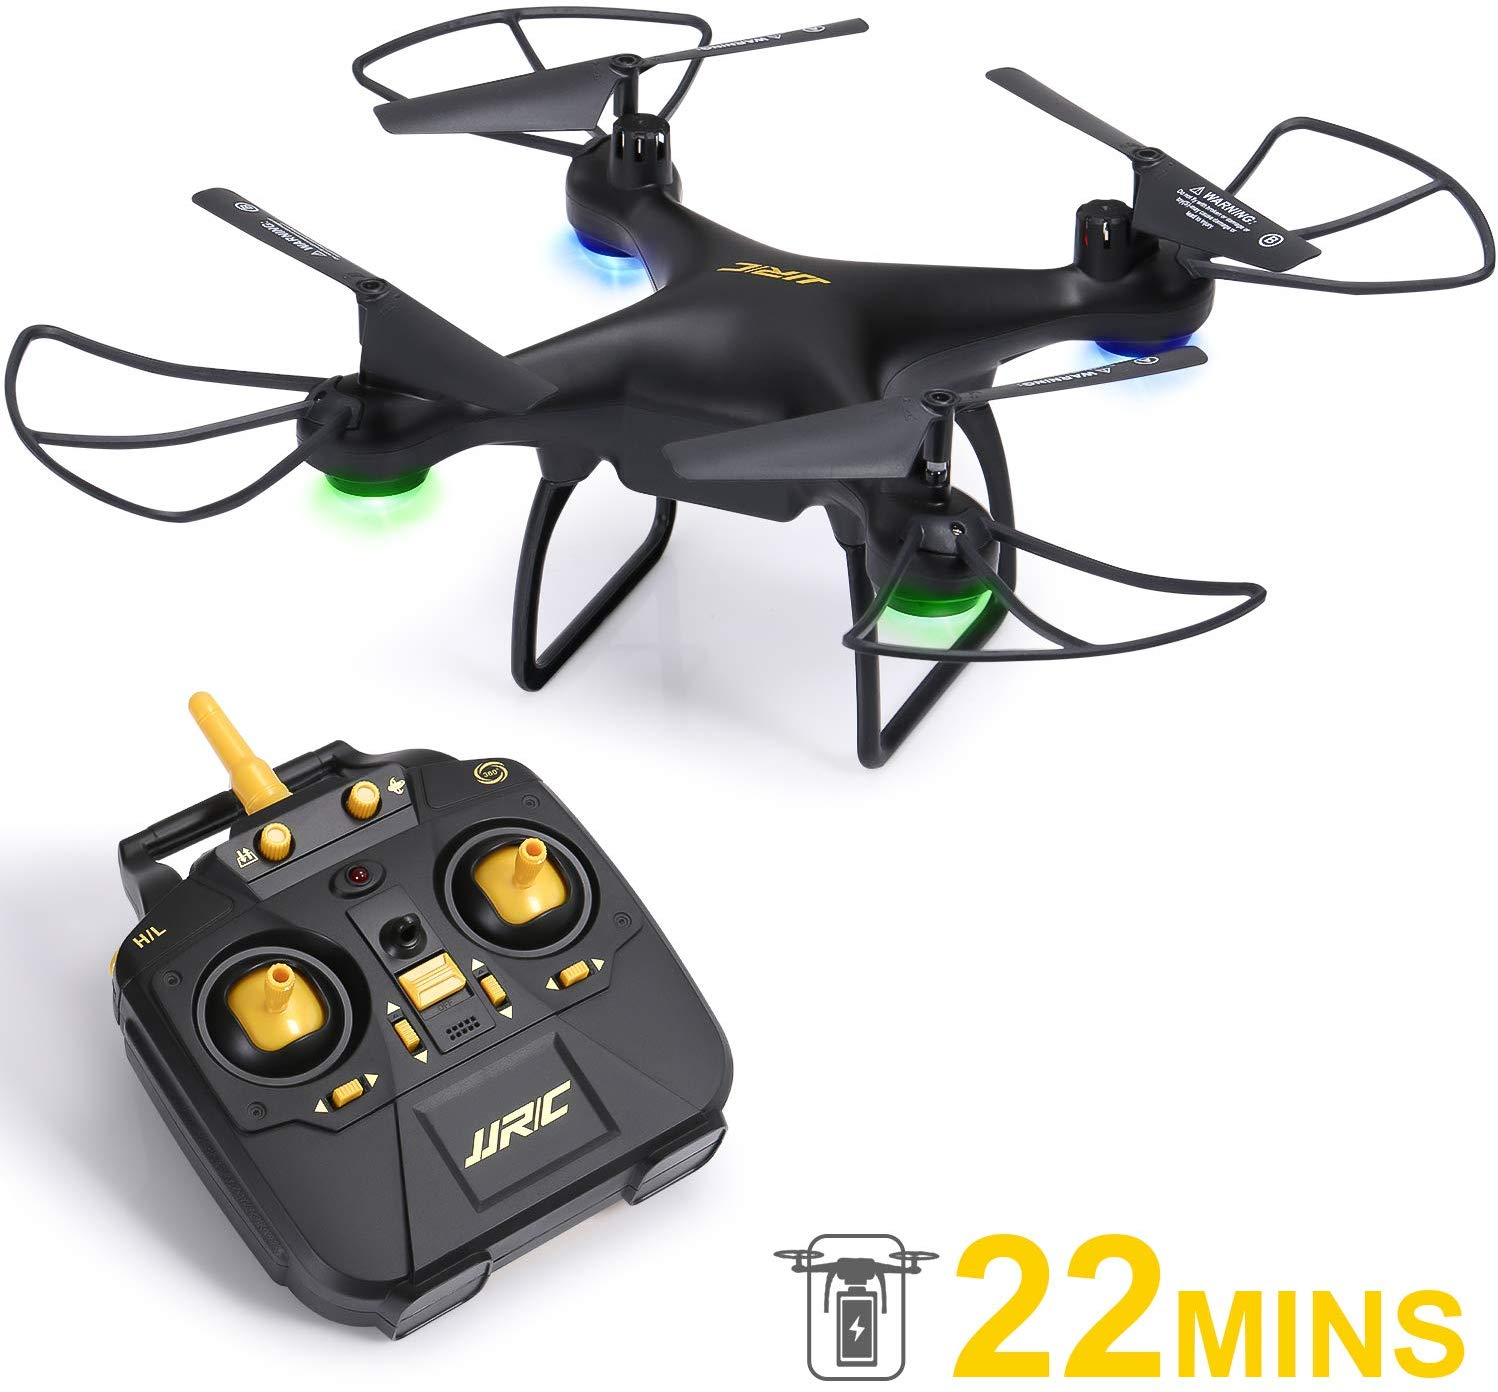 SGILE Remote Control Drone for Kids – RC Quadcopter with 22 Mins Long Flight Time & 3D Flip for Beginners